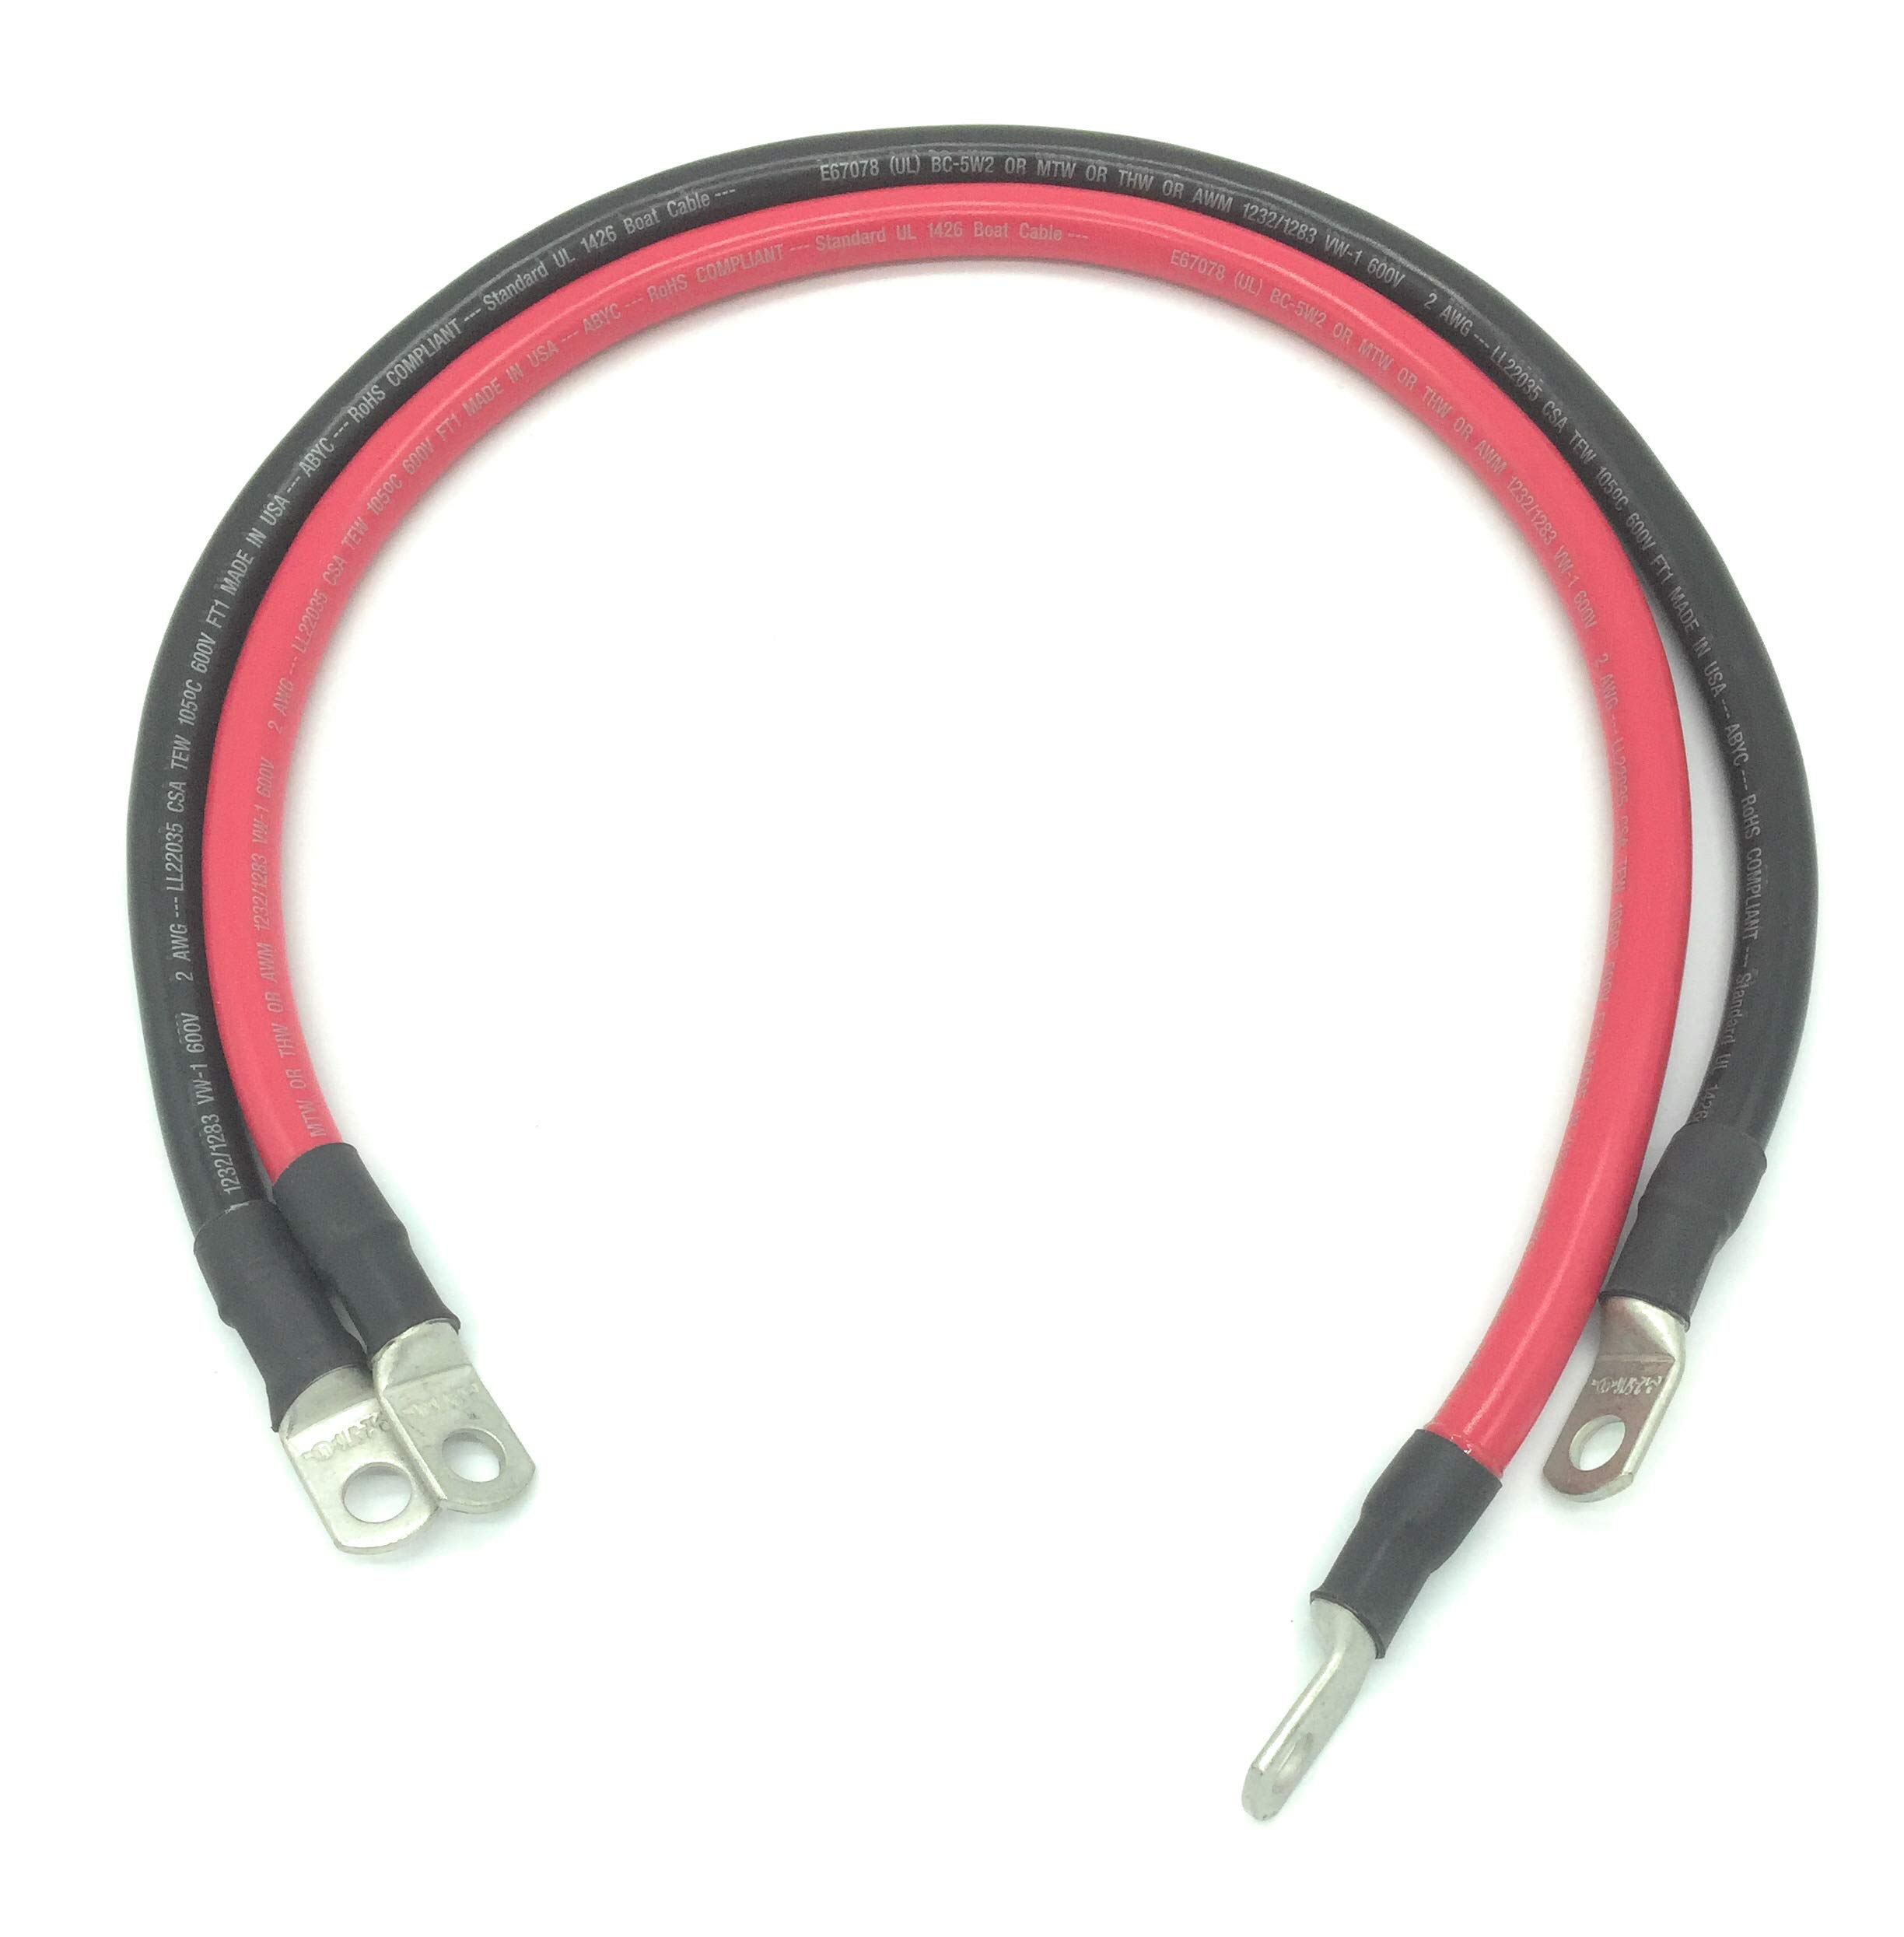 IEWC 2 AWG Marine Grade Boat Battery Cables (24) by IEWC